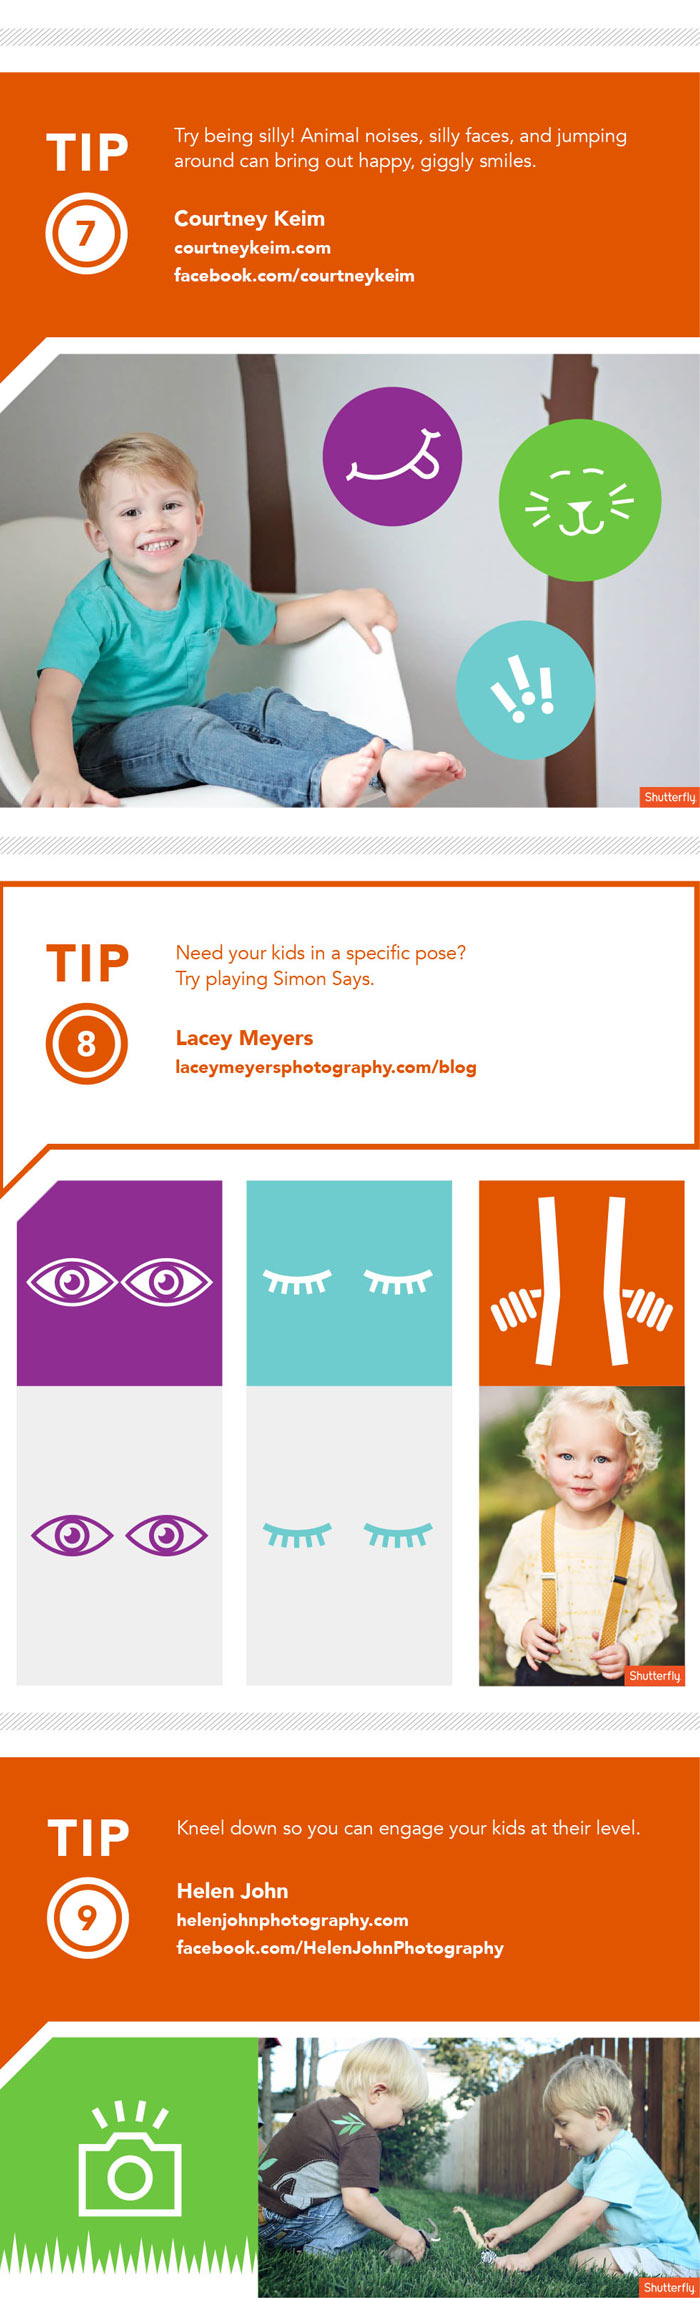 Kids Photography Tips Infographic by Shutterfly